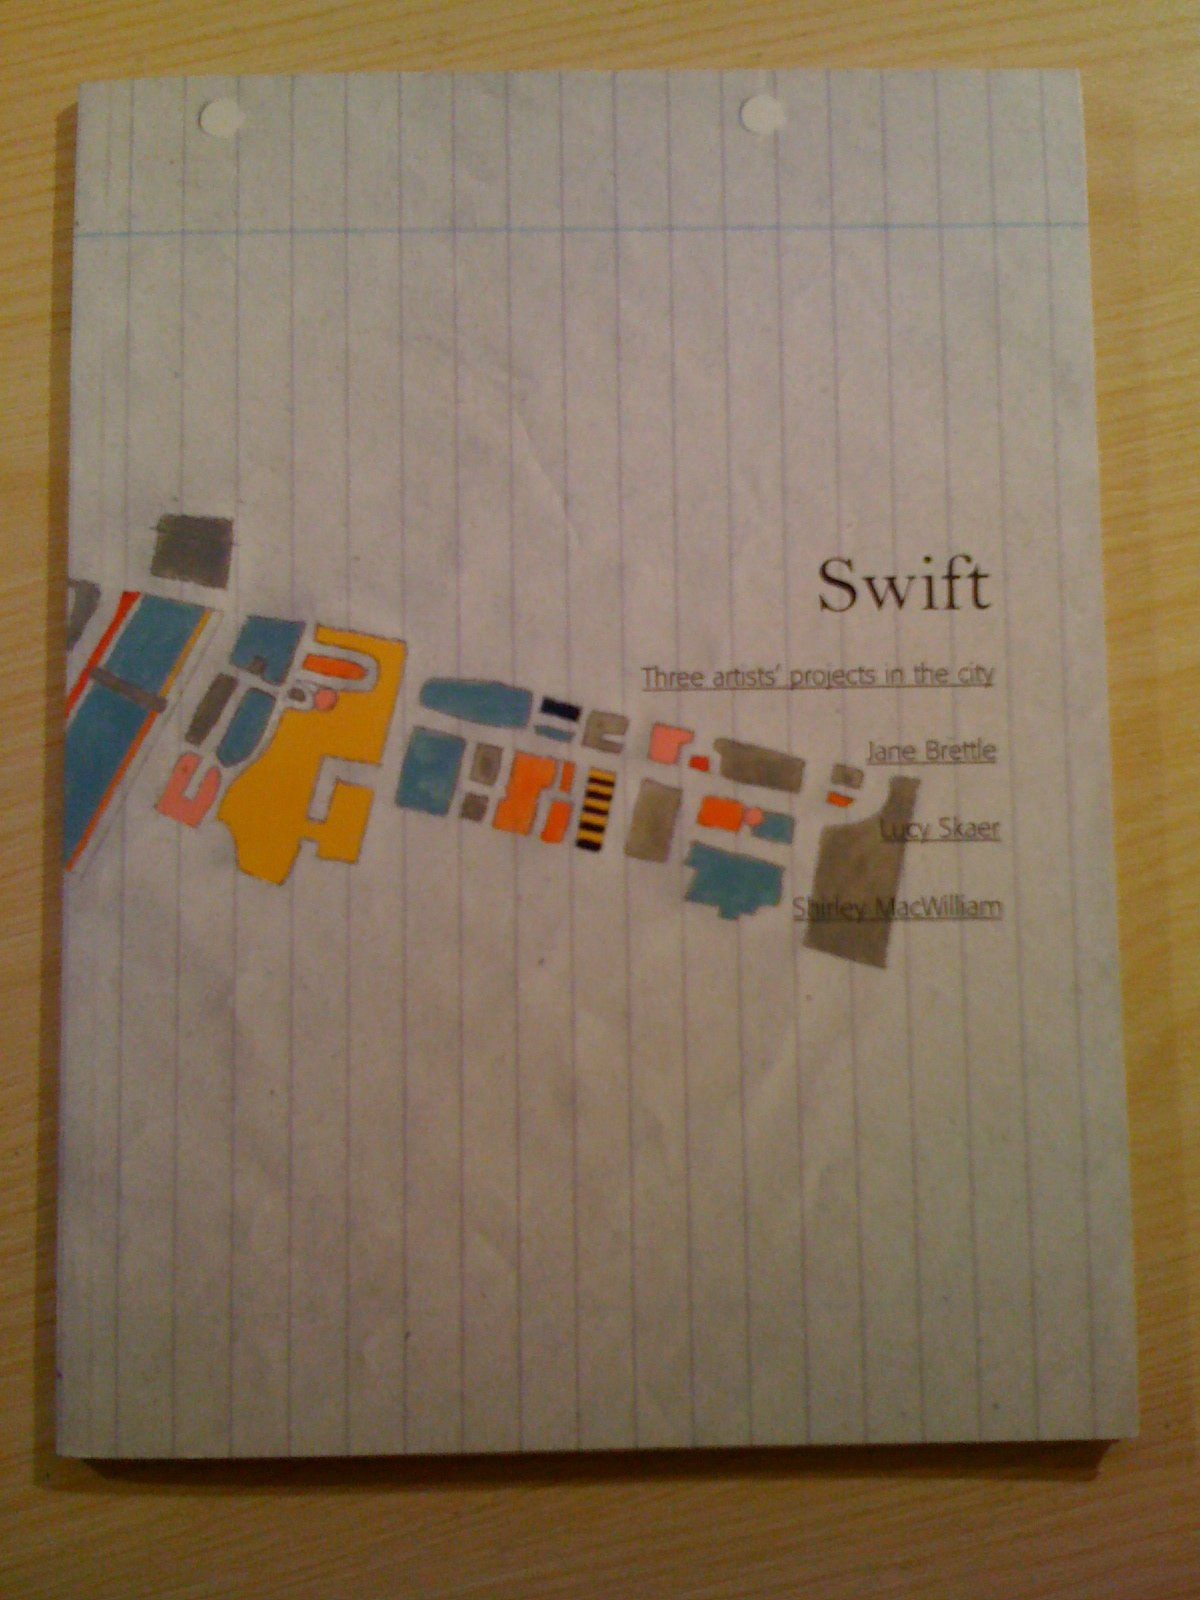 Swift: Three Artists' Projects in the City - Jane Brettle